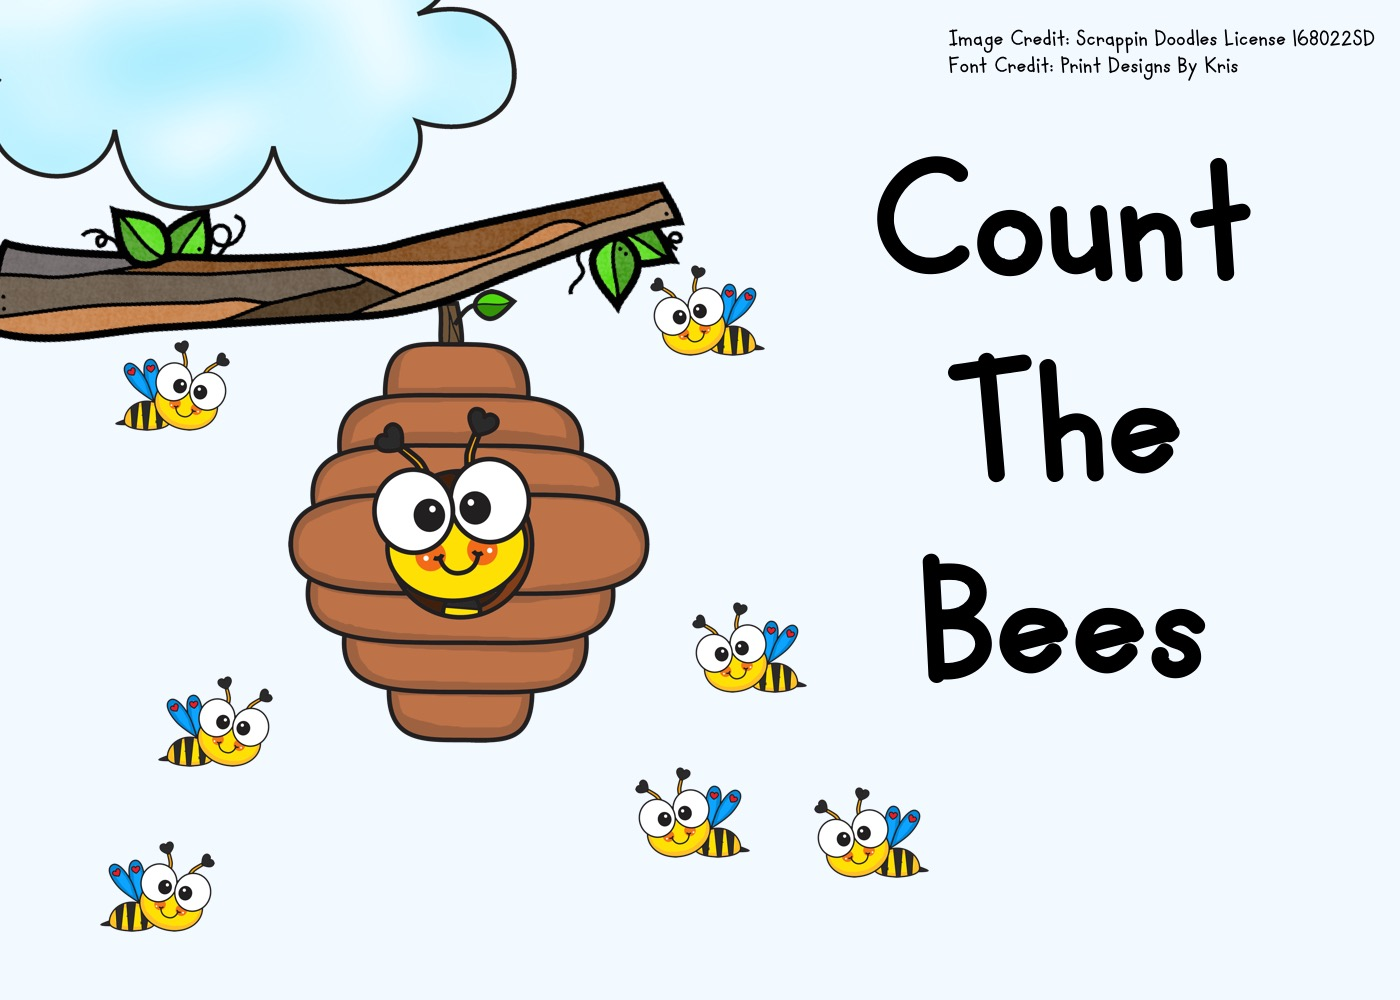 Fun Bugs Printables for Preschool and Kindergarten | Insect Themed Counting Games | Hands On Math Homeschool Activities | Kids Classroom Center Ideas and Worksheets #FreePrintableWorksheetsForKids #bees #counting #insect # bug #spring #clipcards